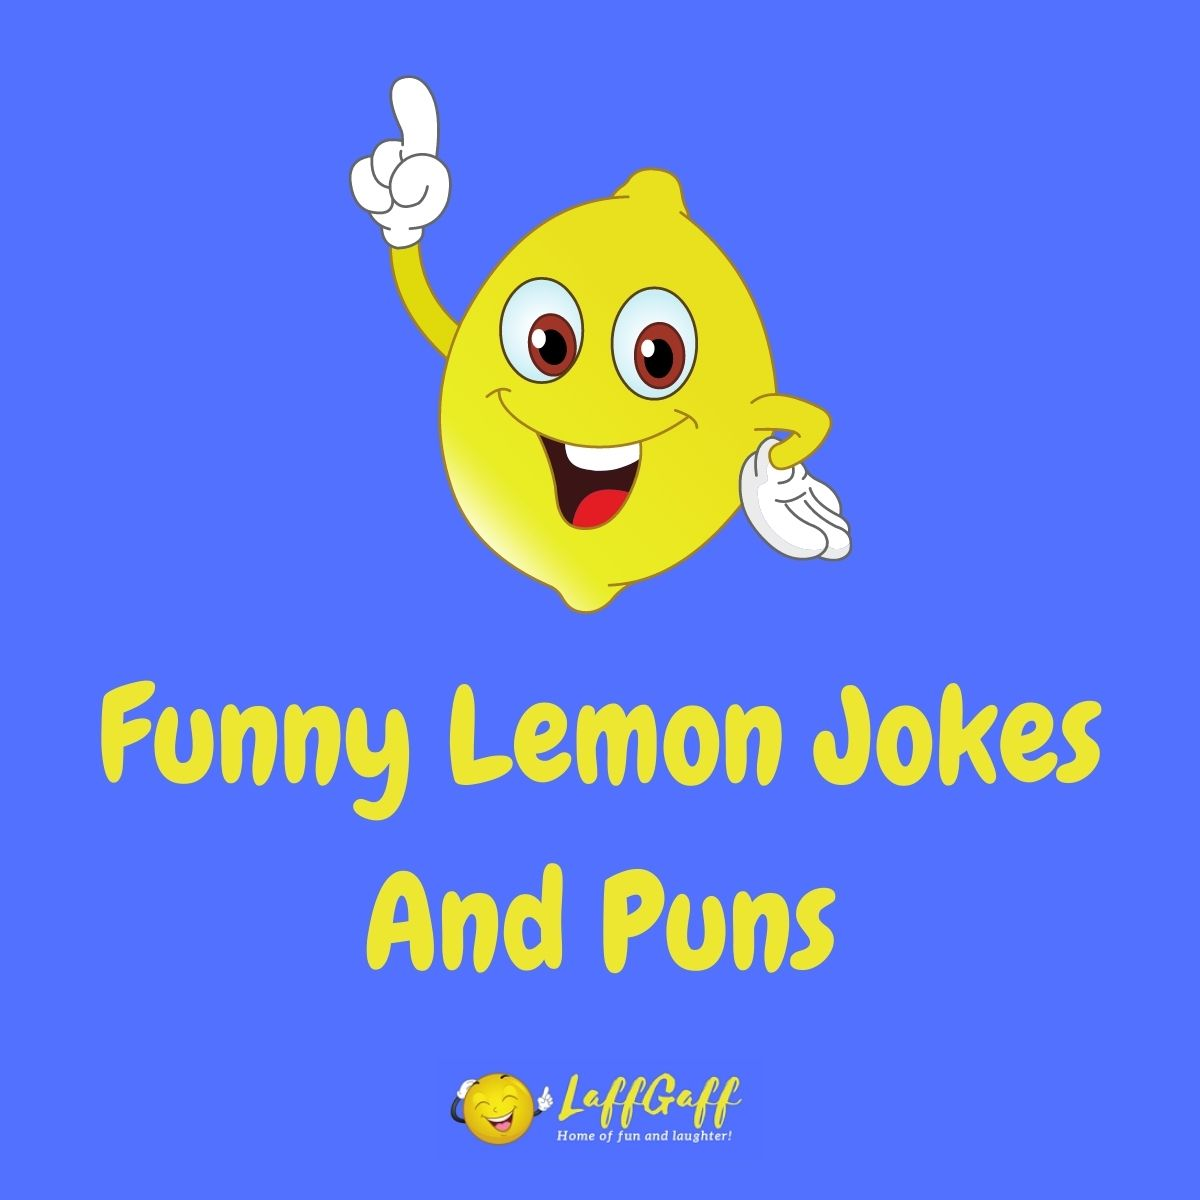 Featured image for a page of funny lemon jokes and puns.